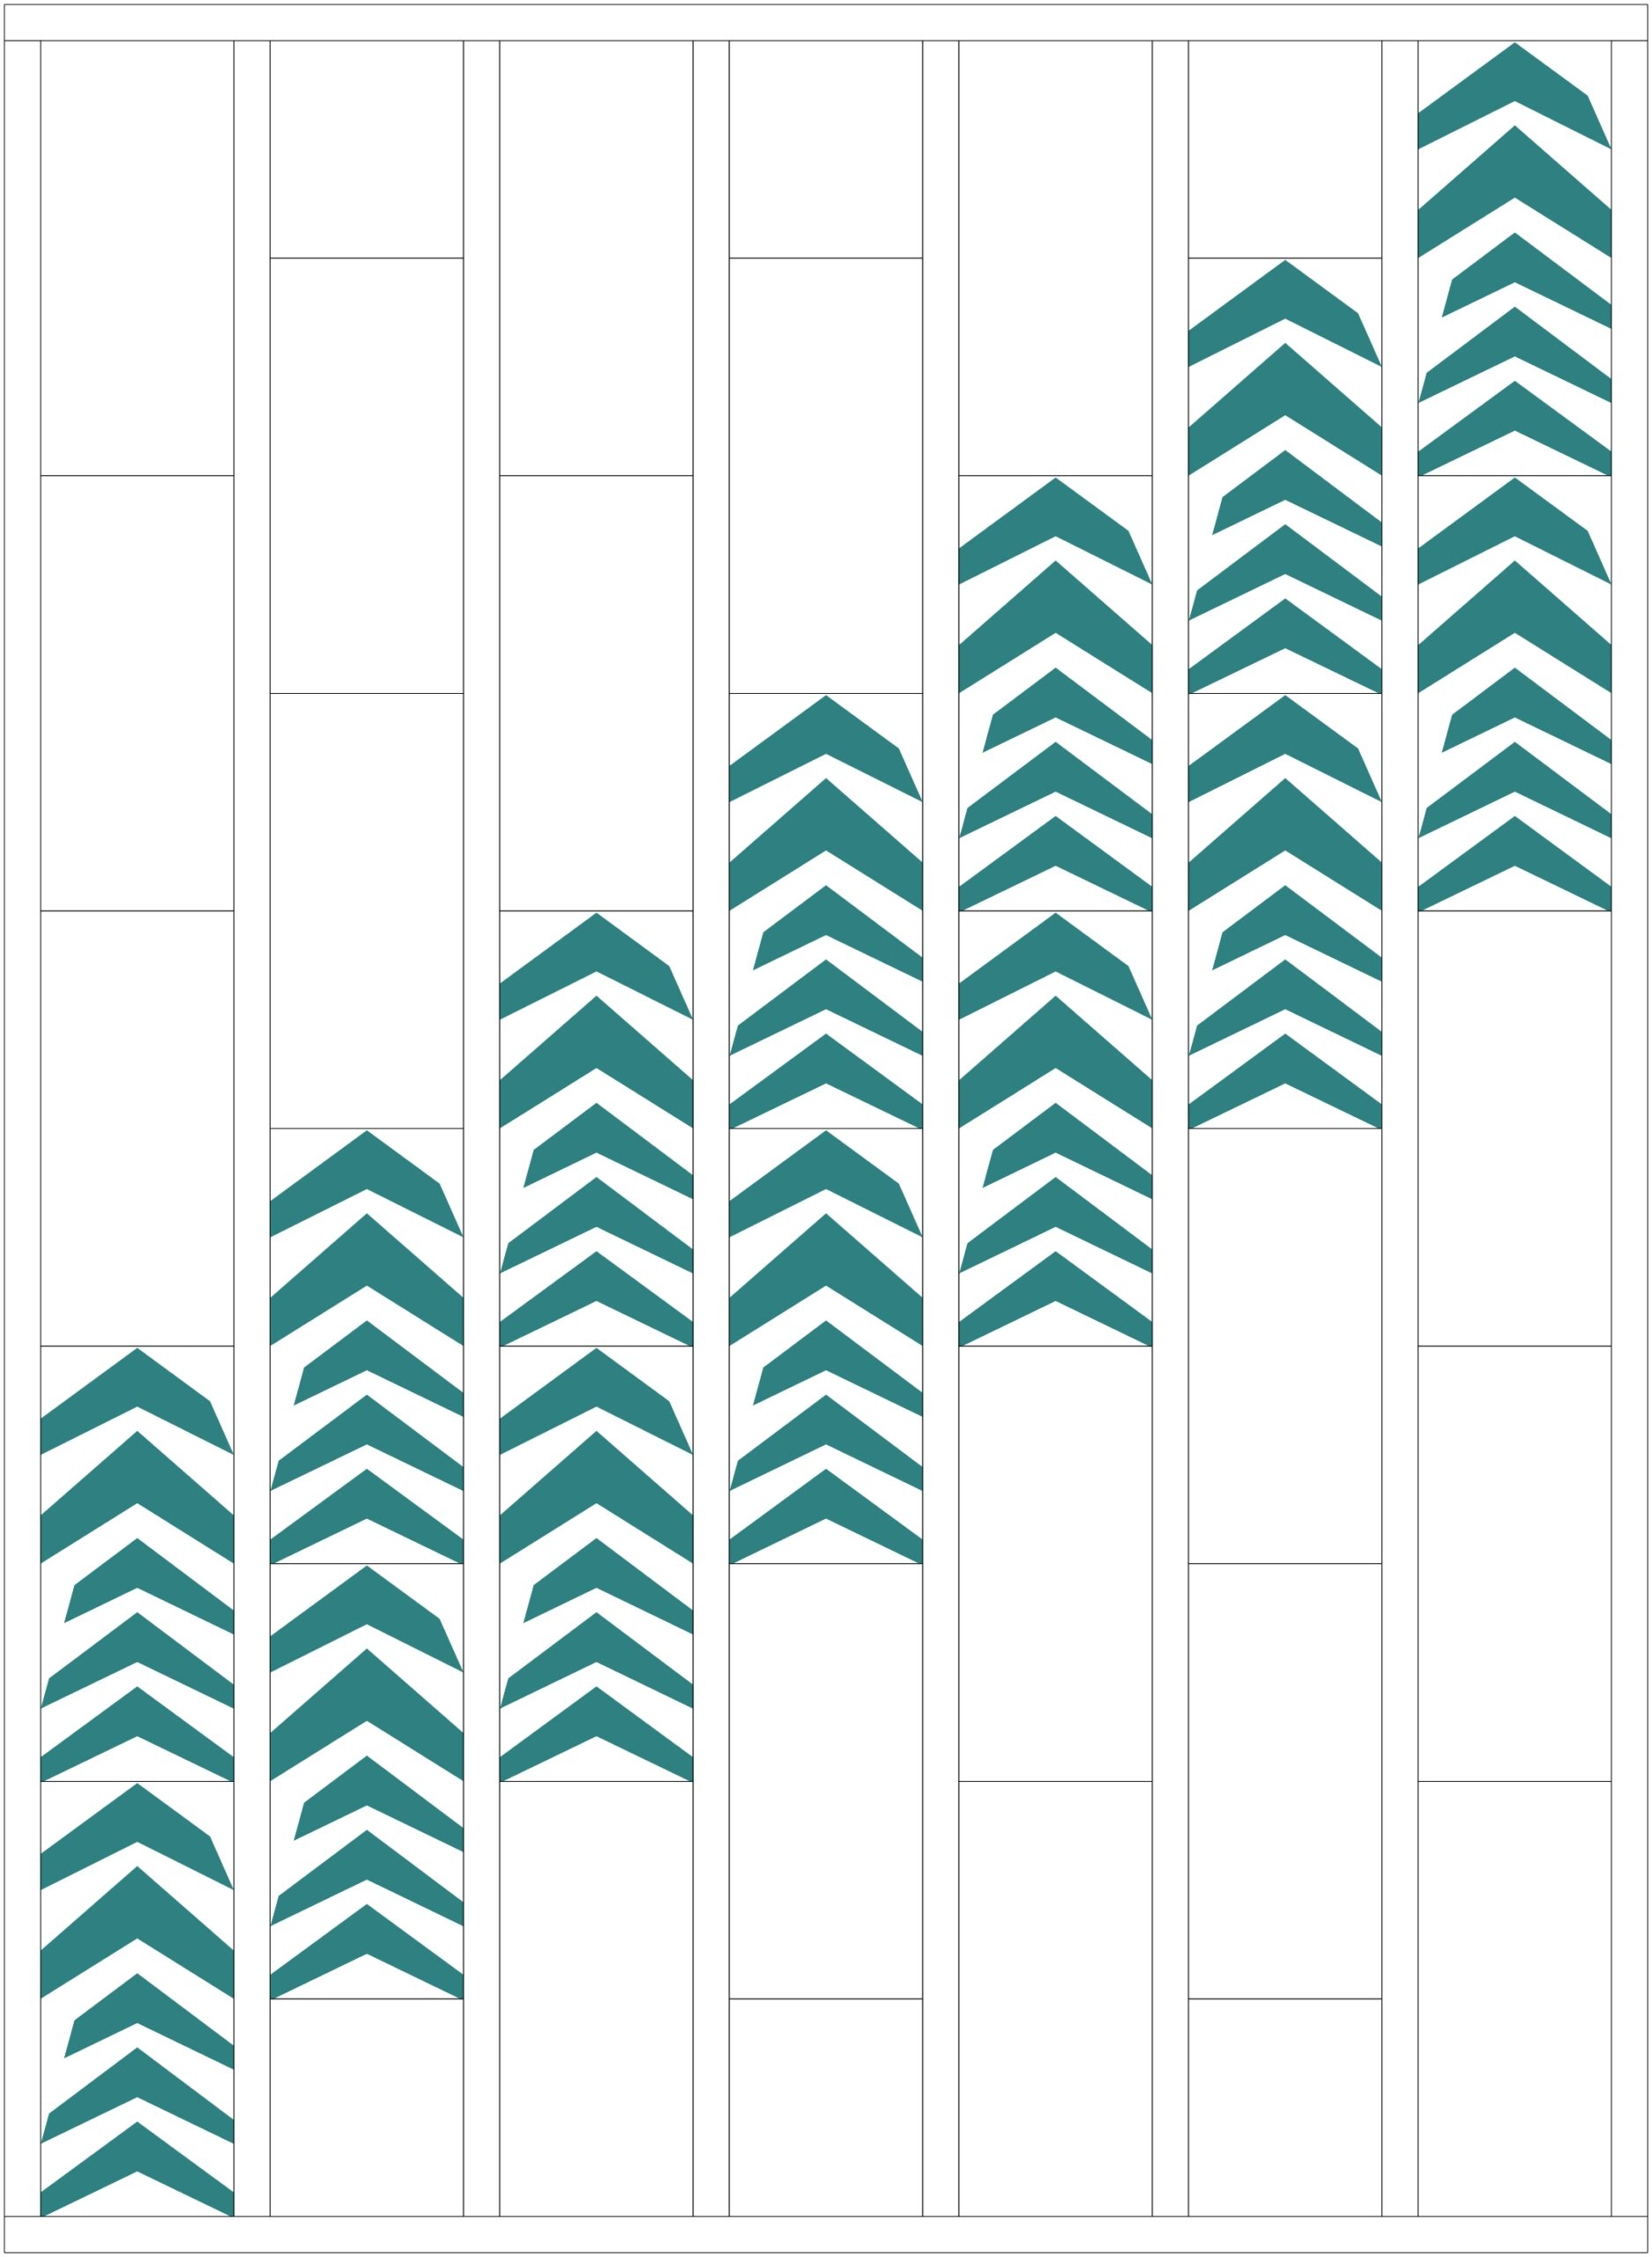 Wonky Chevrons - Alternate Layout Option 1 | mellmeyer.de